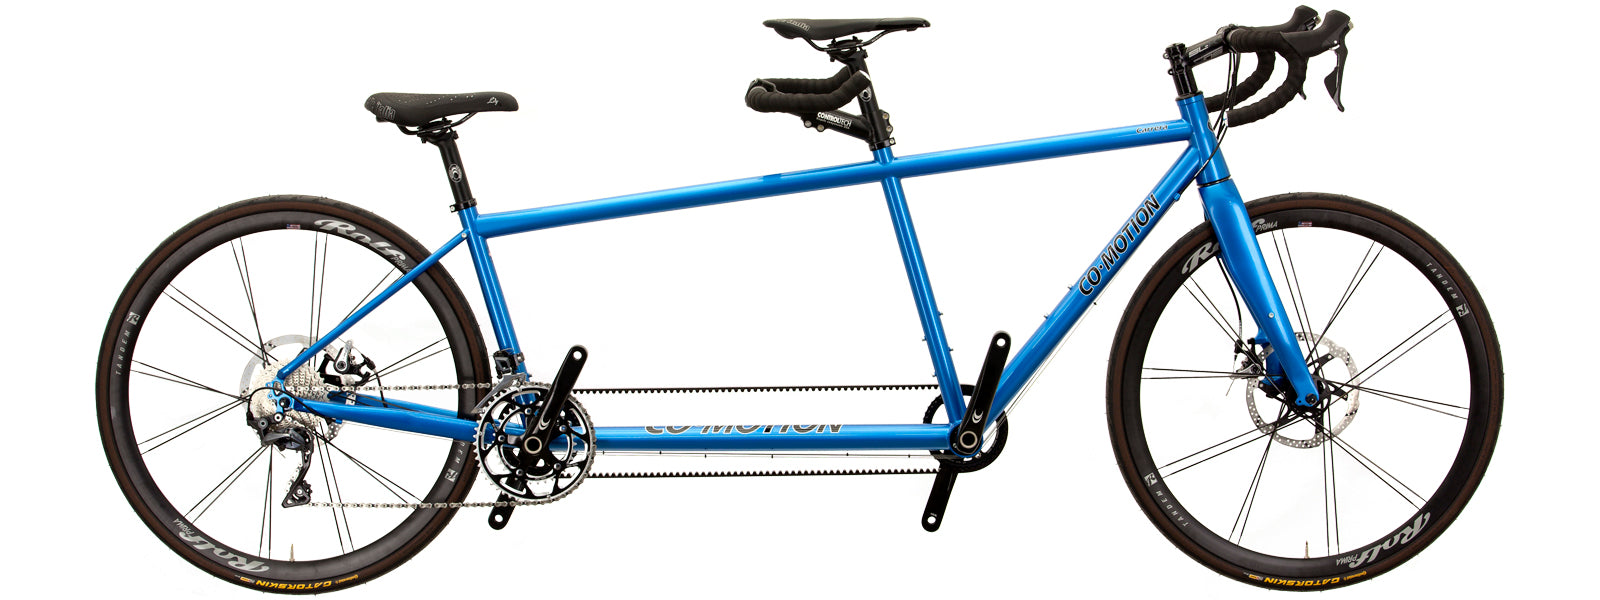 Carrera - Co-Motion Cycles